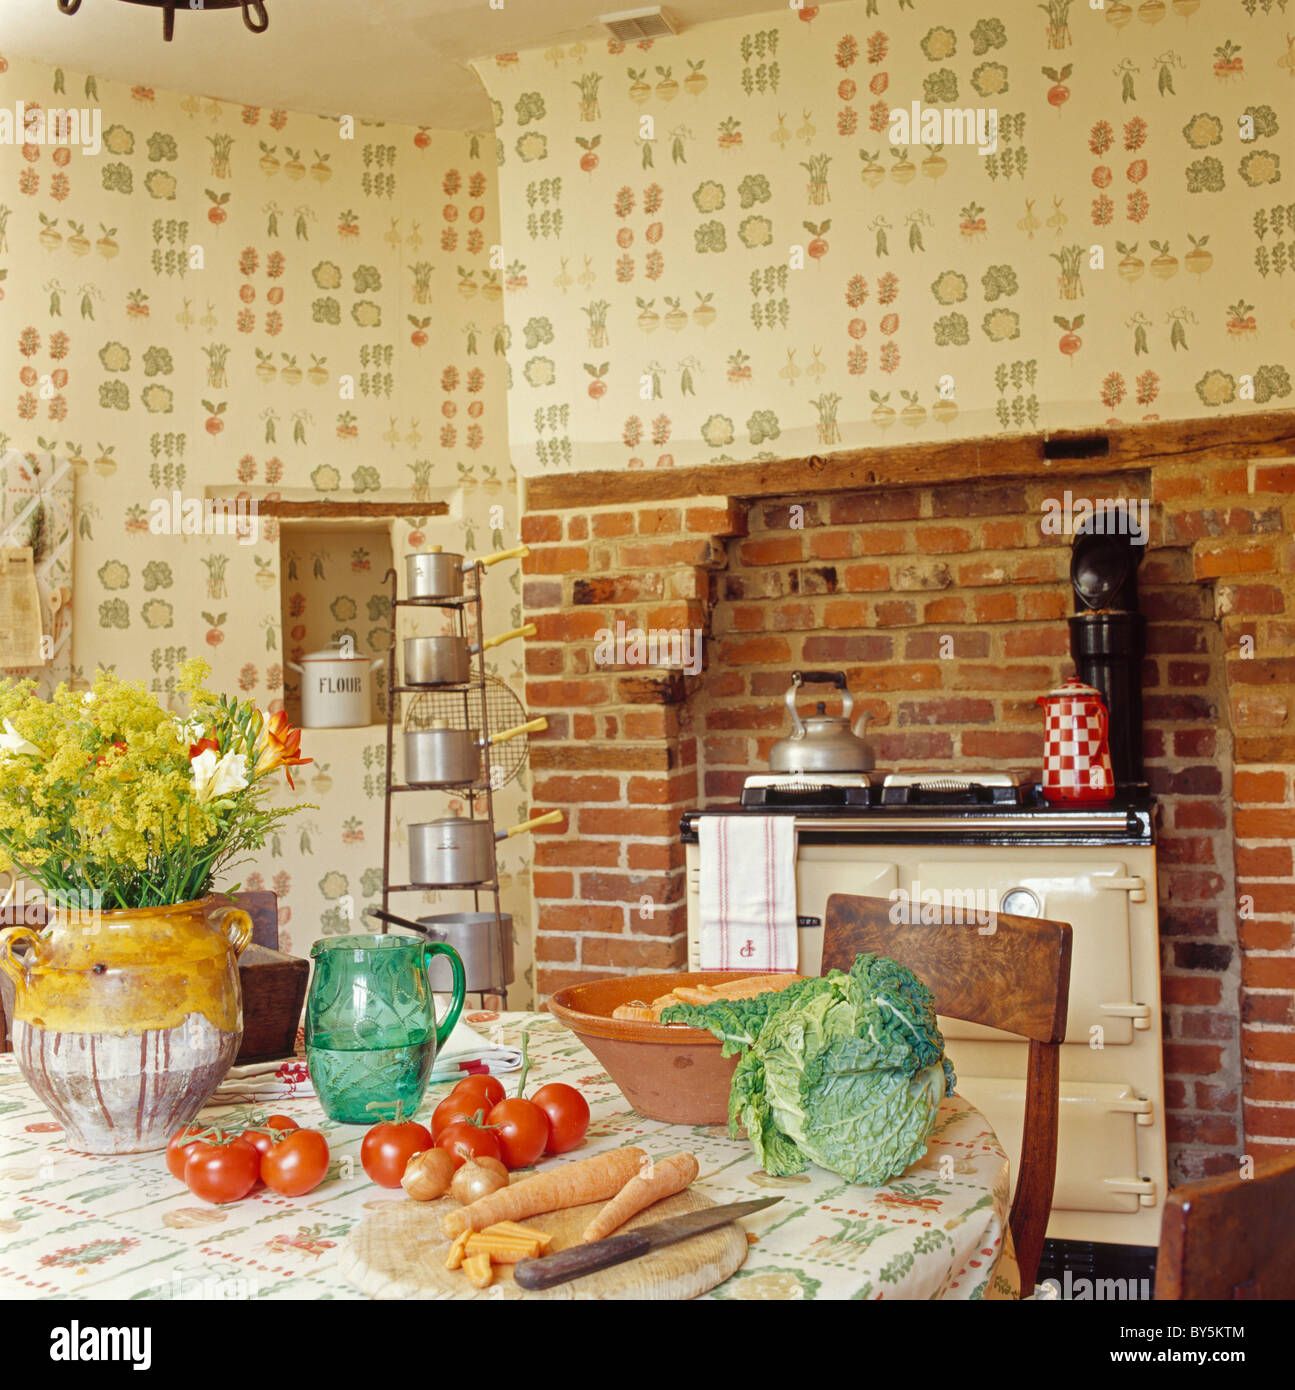 Stock Photo   Vegetables On Table In Country Kitchen With Cream Aga Oven  And Vegetable Patterned Wallpaper